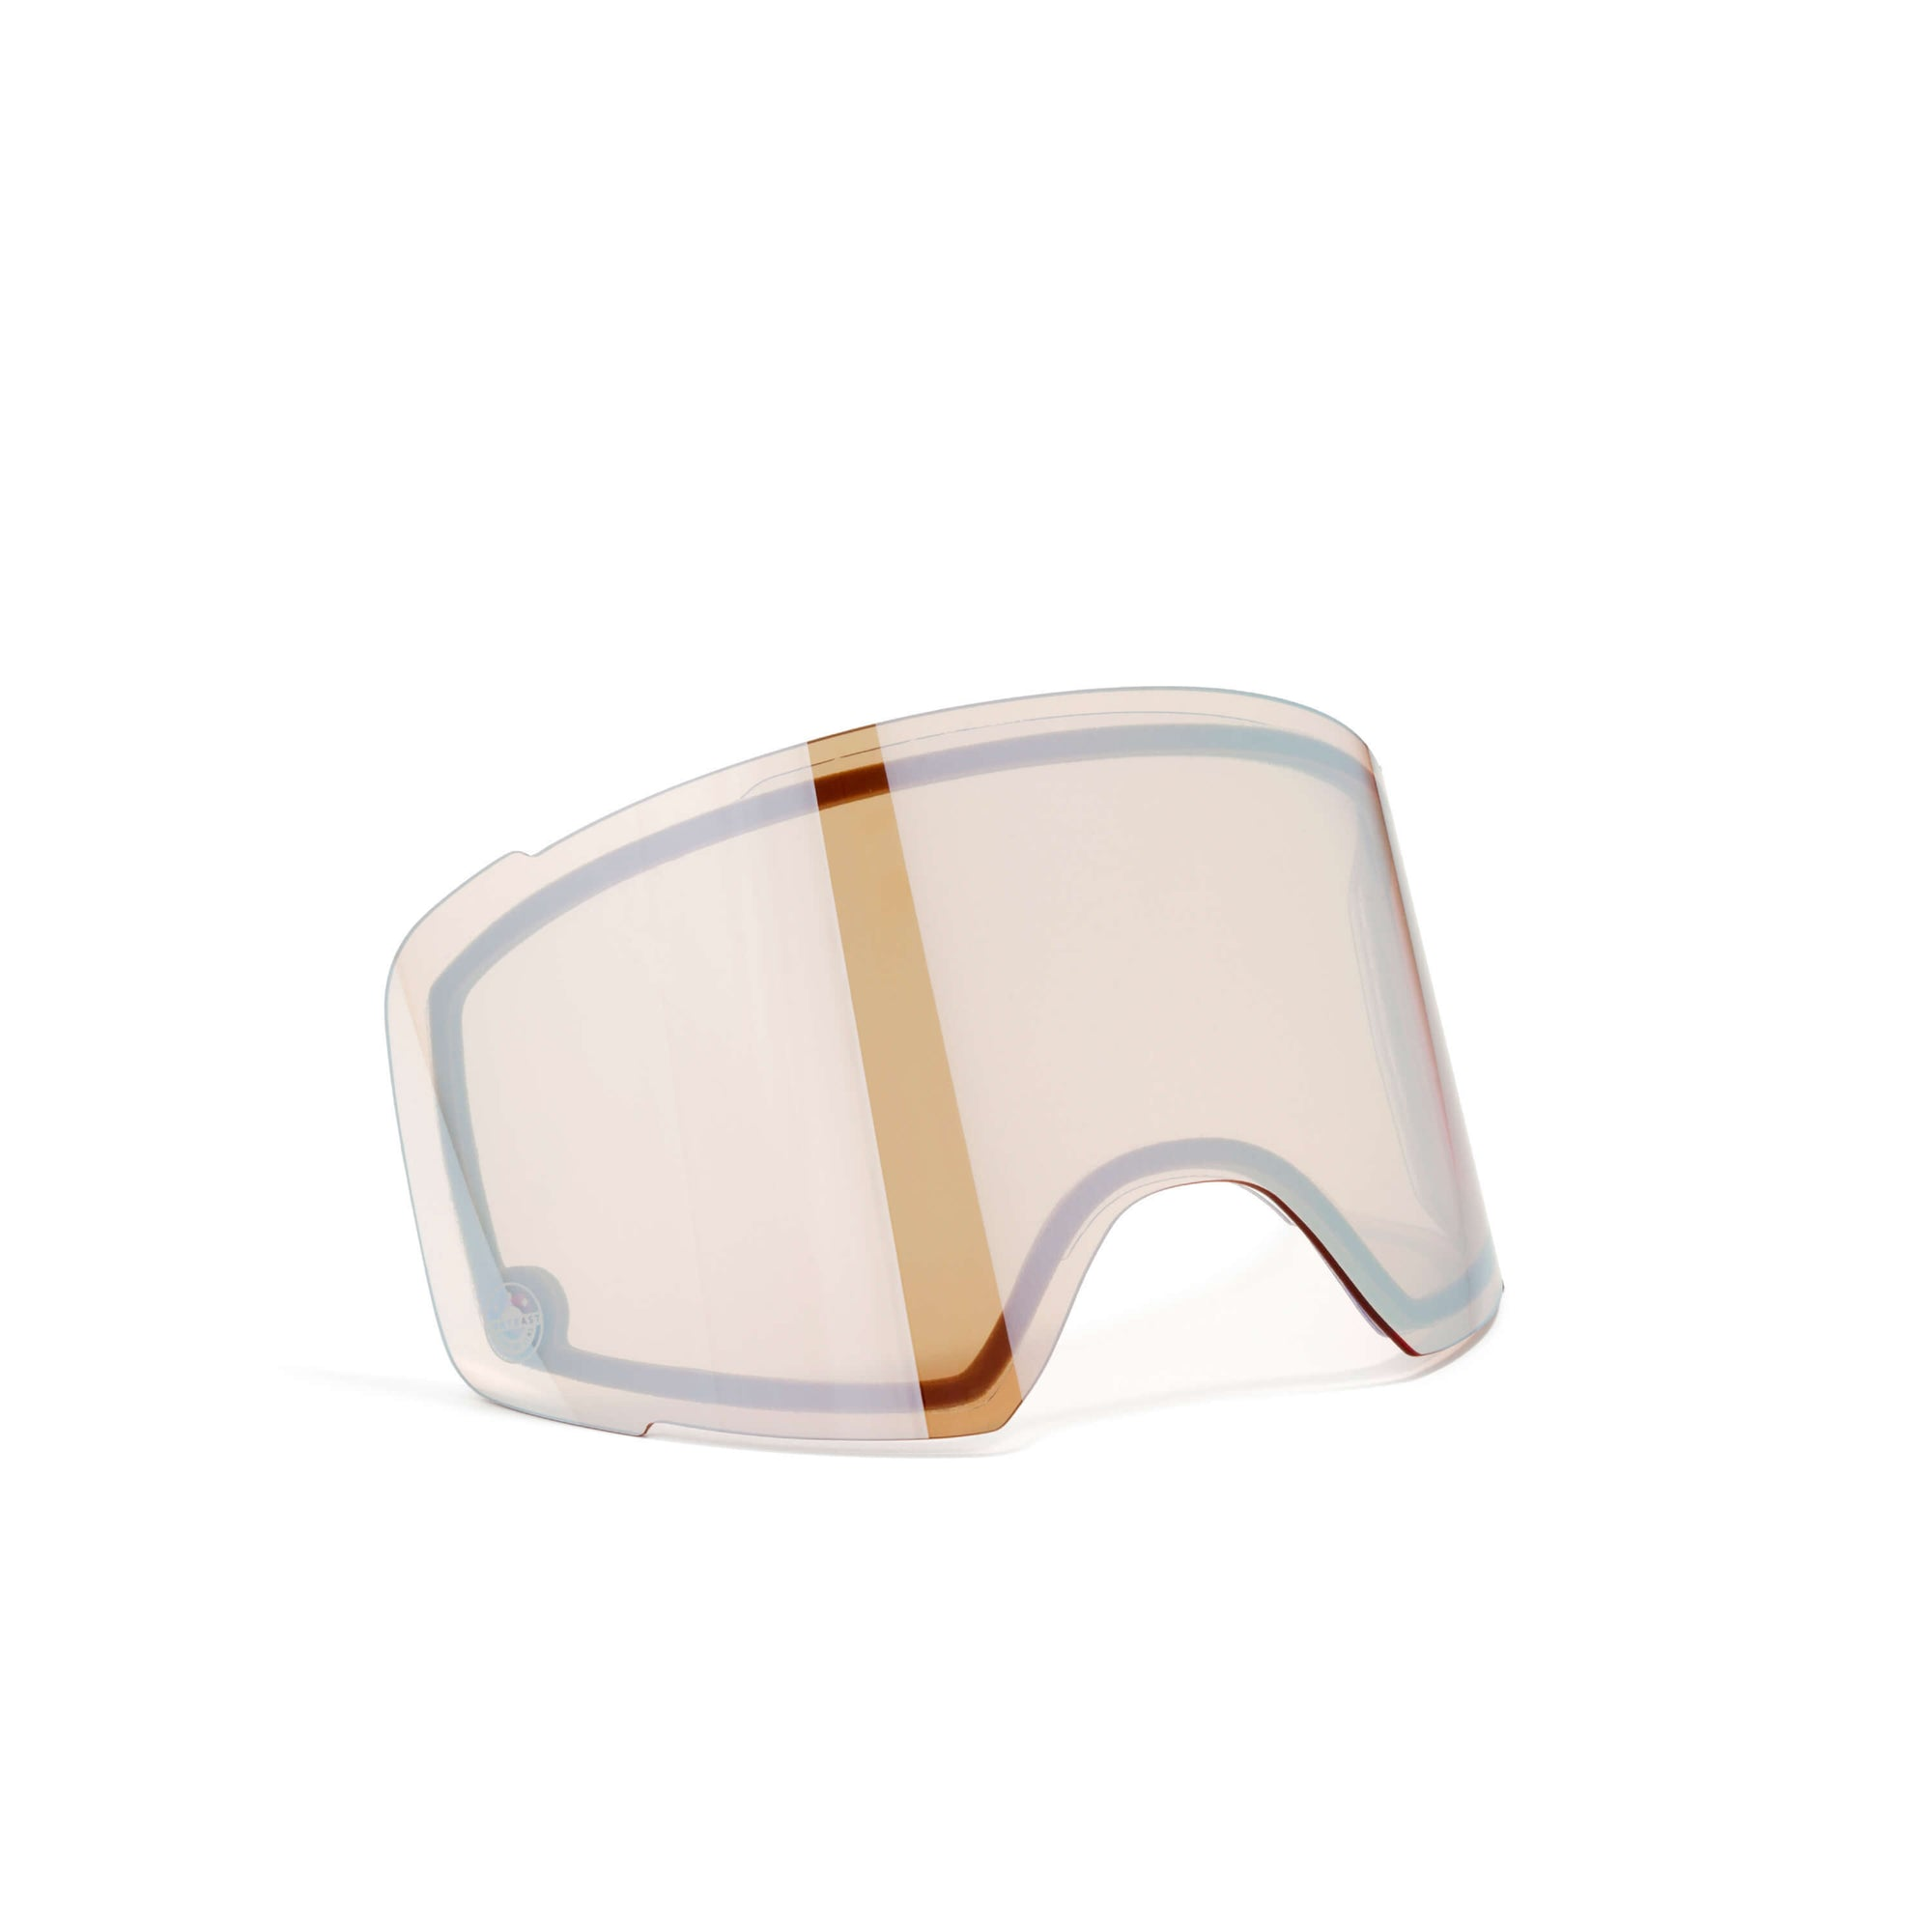 Simplify Double Lens Cbl Sky Mirror - Spare Lenses